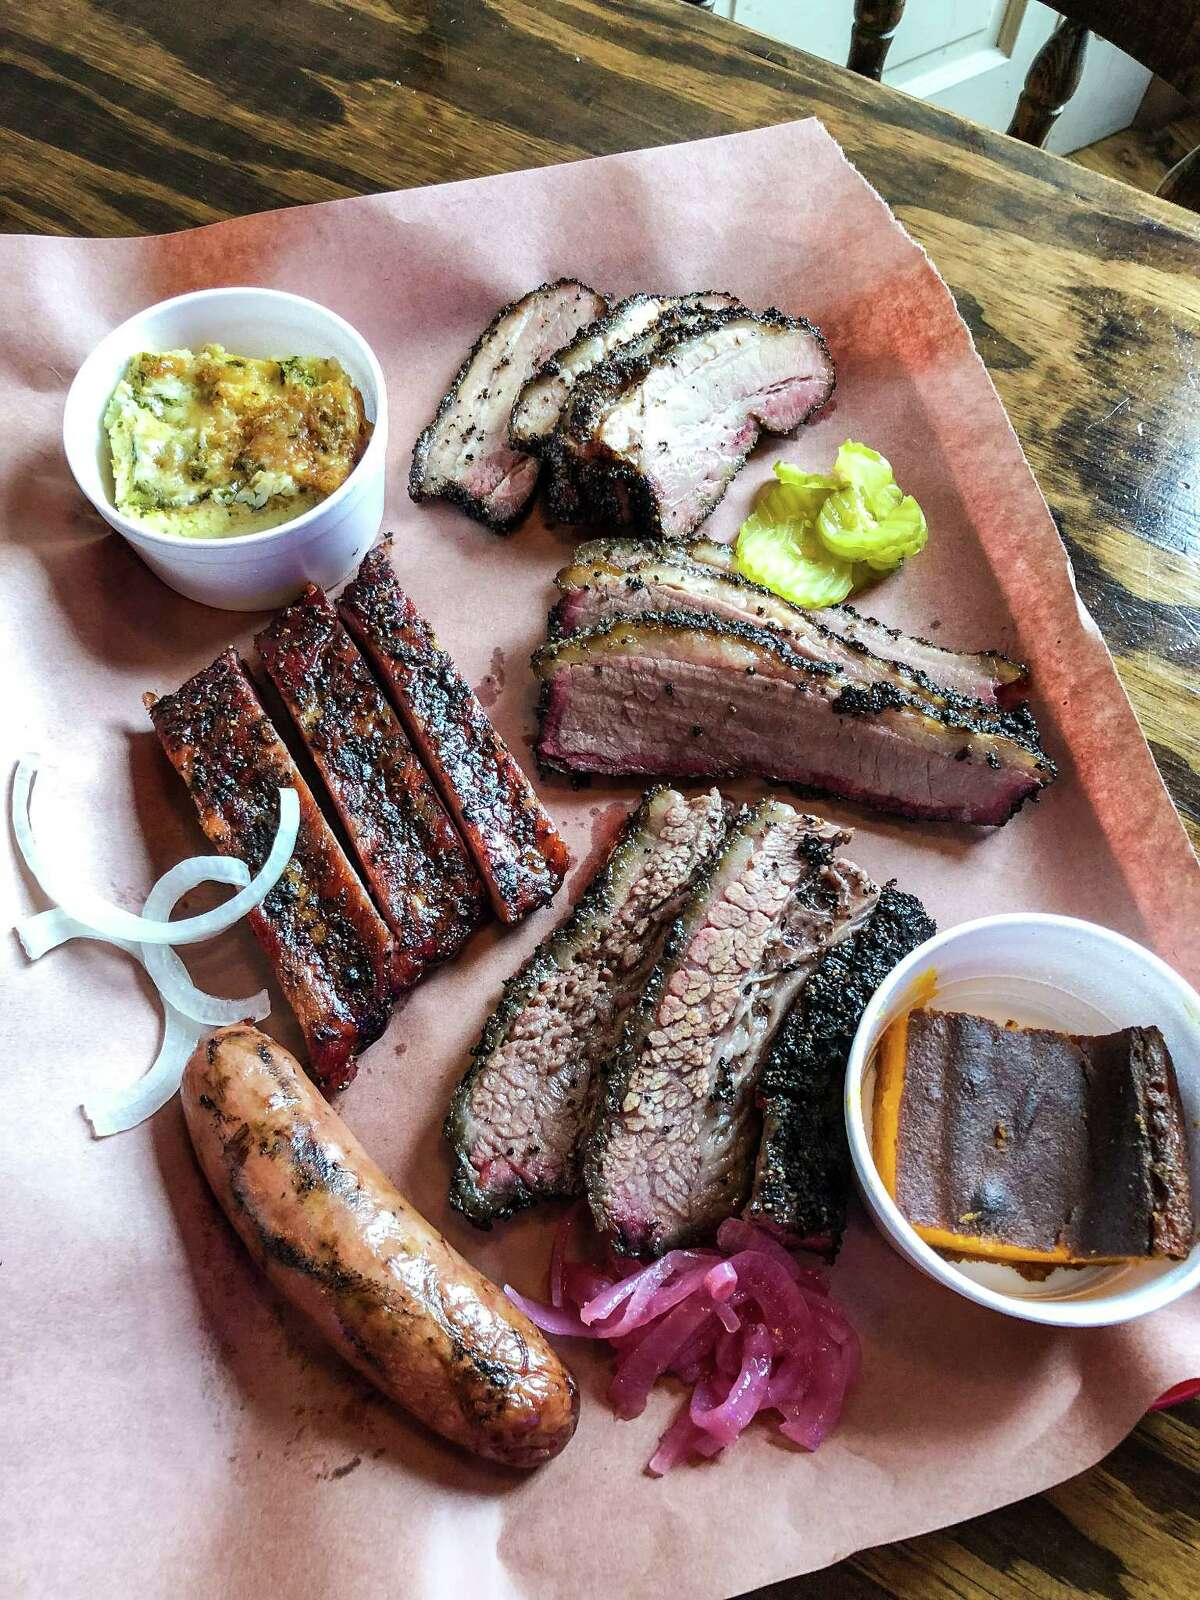 A tray of barbecue at Tejas Chocolate & Barbecue, Tomball